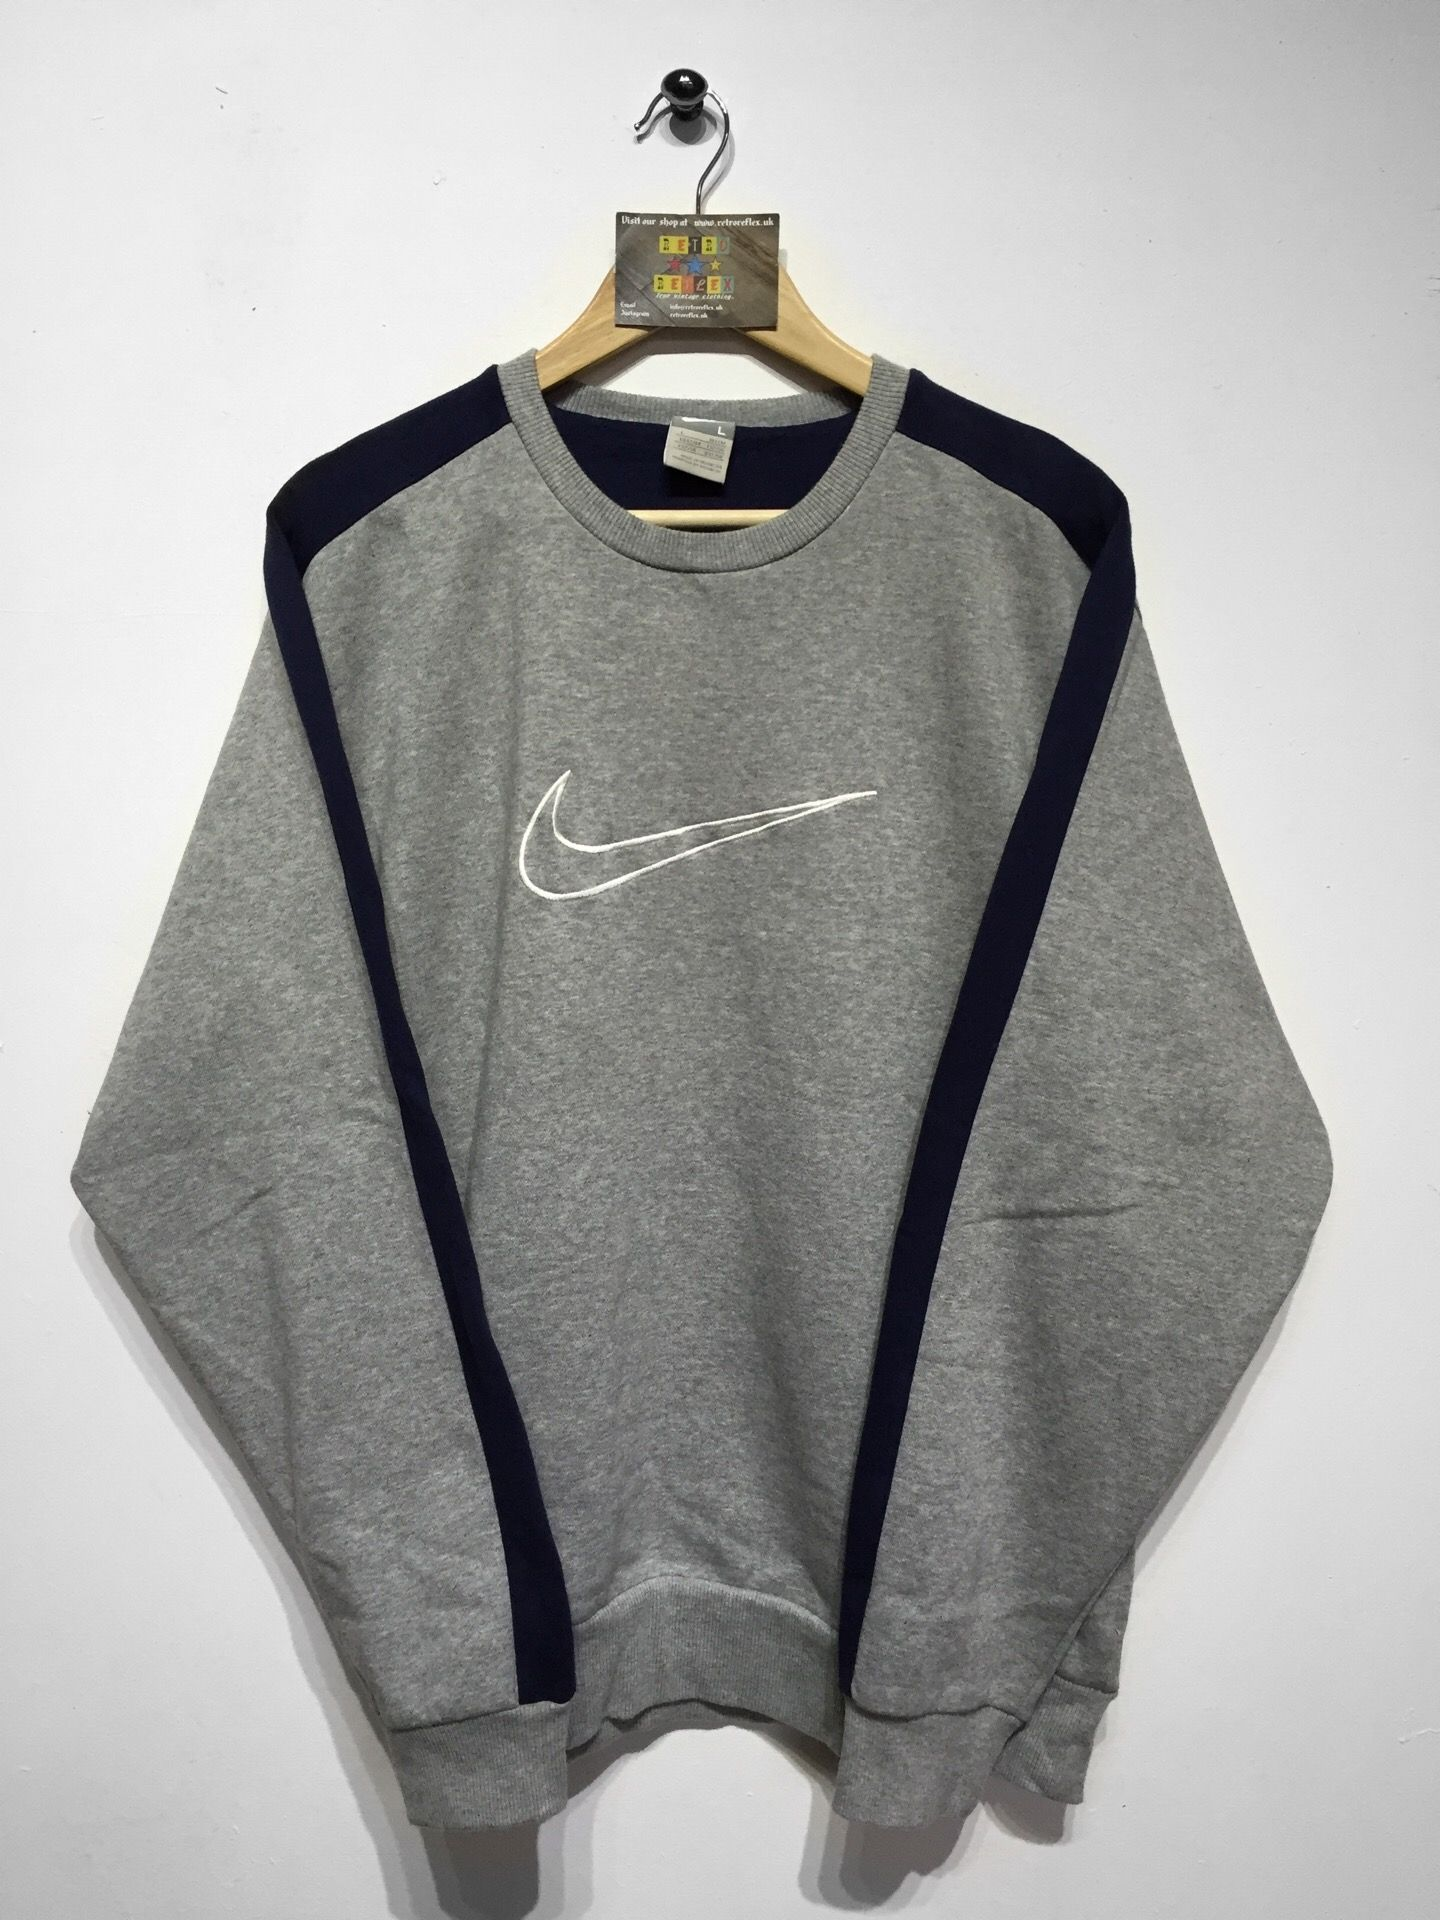 Nike sweatshirt Size Large(but fits oversized) £34 Website